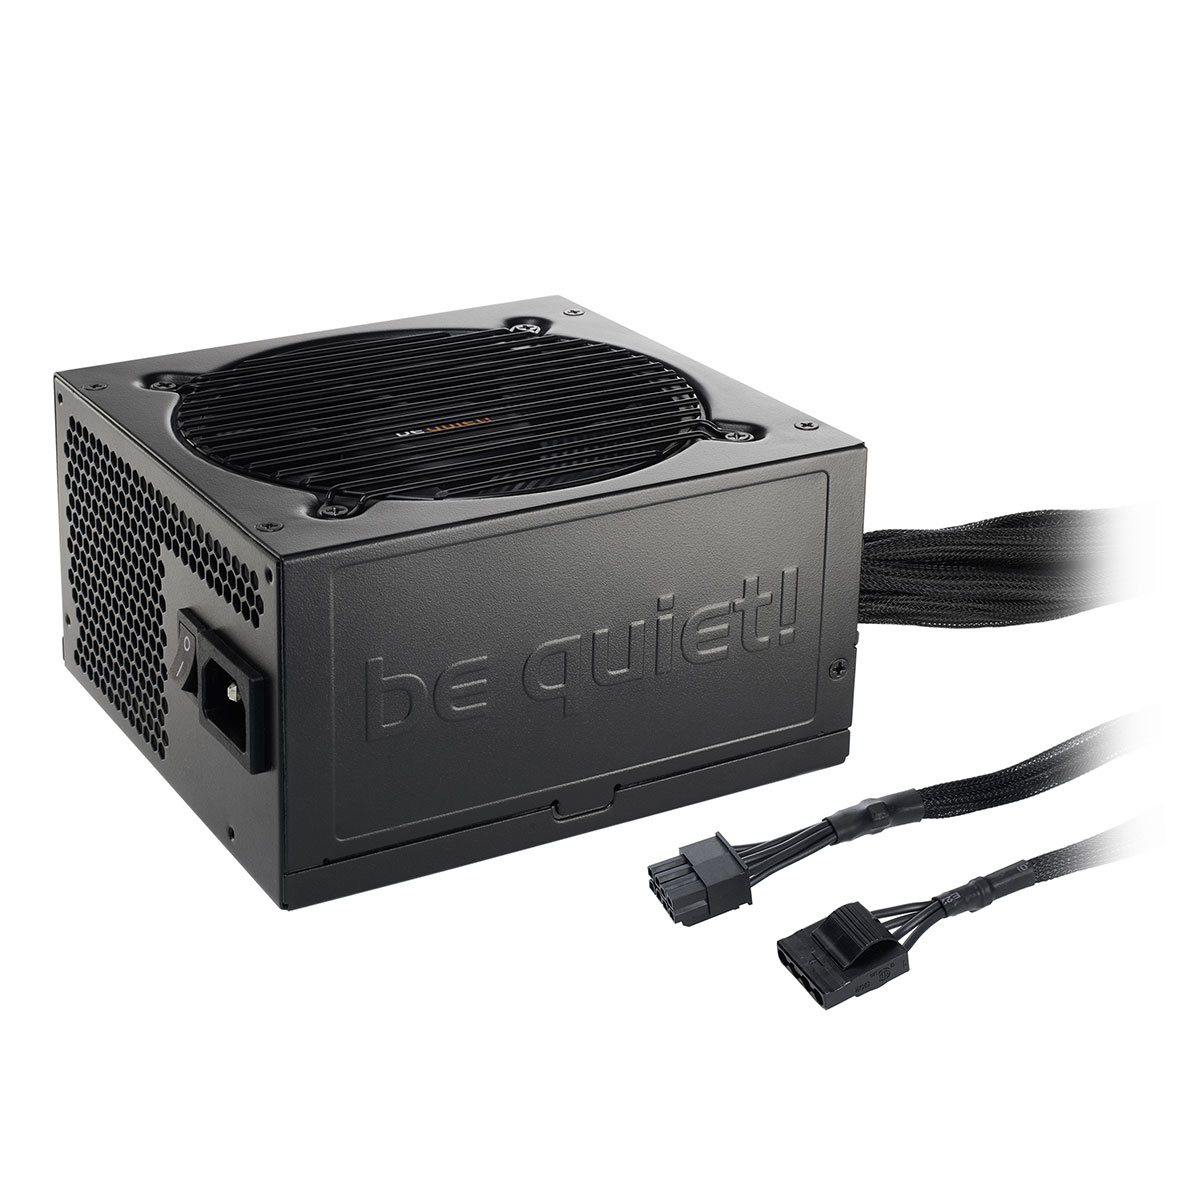 Be Quiet! 700W Pure Power L9 BN265 (BN265 --) - Achat / Vente Alimentation sur Cybertek.fr - 1